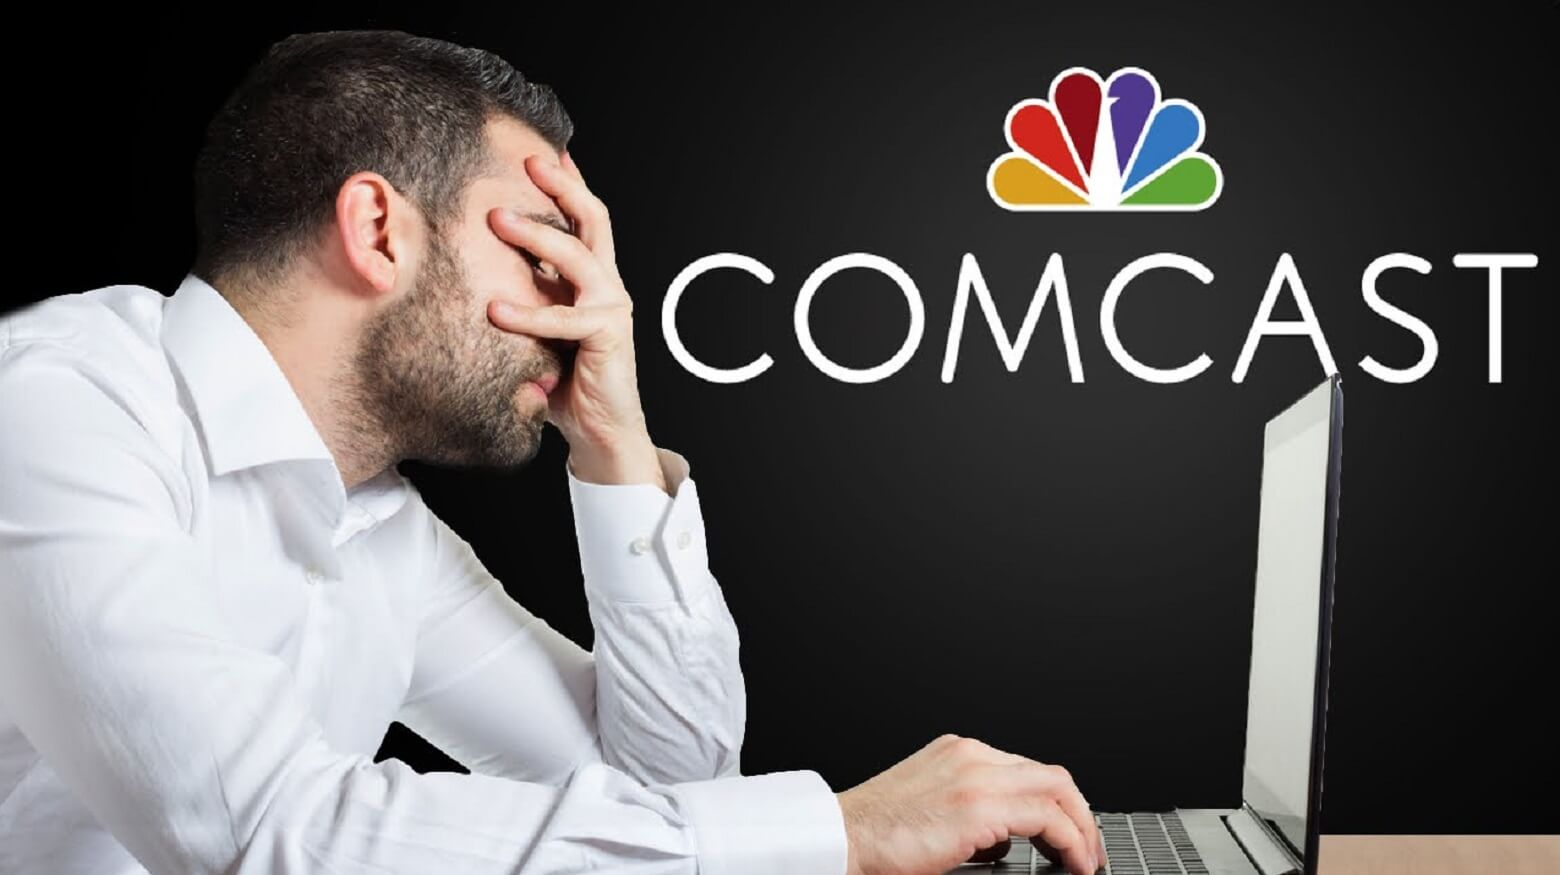 comcast assholes